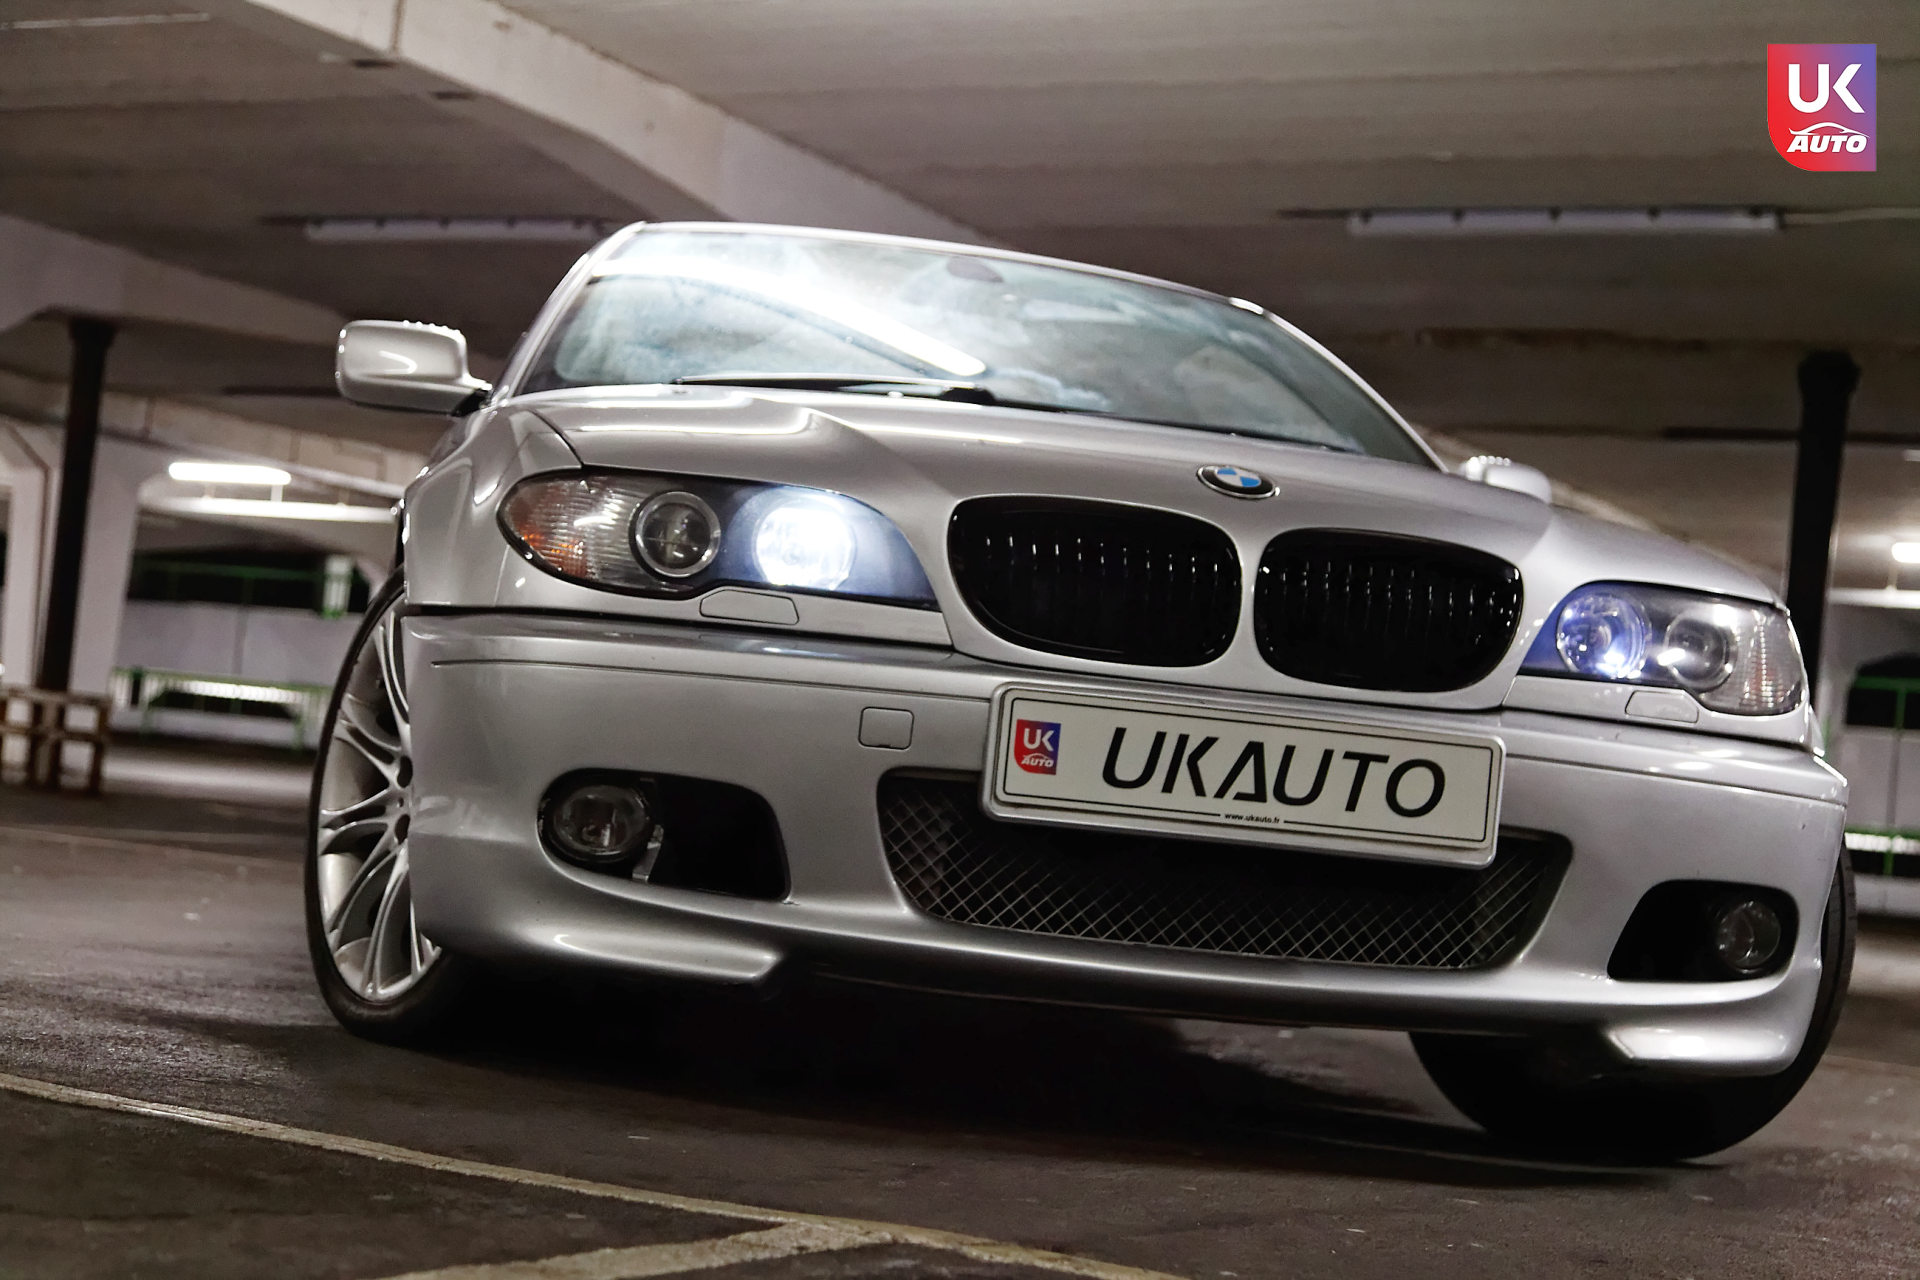 Bmw 330ci e46 import voiture anglaise bmw angleterre ukauto mandataire angleterre bmw 330ci rhd9 DxO - MANDATAIRE BMW IMPORT BMW 330CI PAR UKAUTO IMPORT BMW ANGLETERRE PAS CHER FELICITATION A THIBAUT